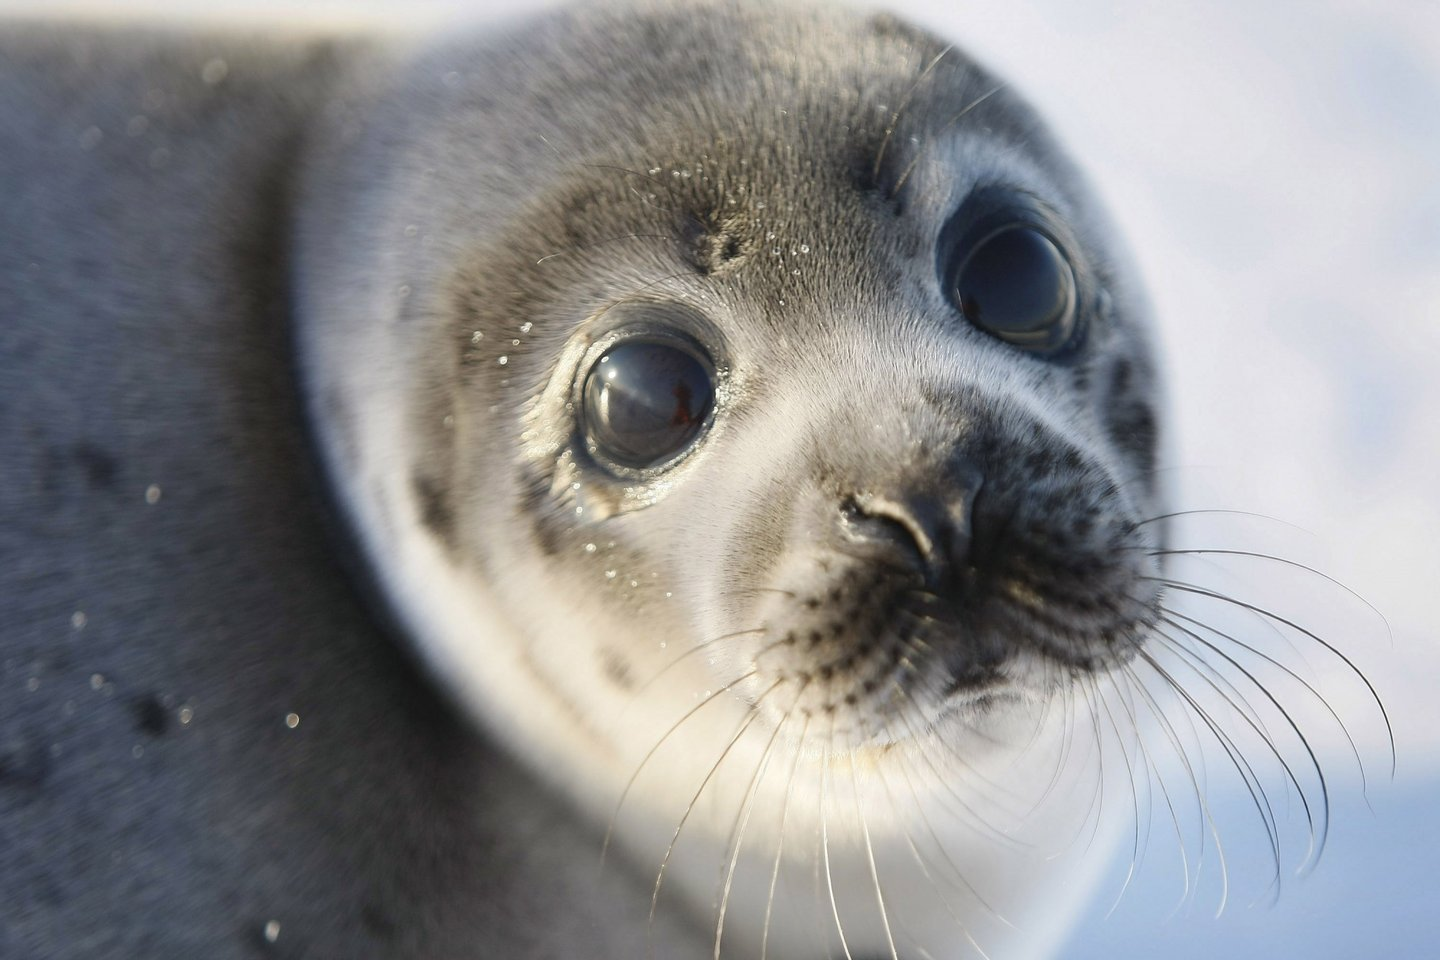 CHARLOTTETOWN, CANADA - MARCH 27:  A Harp seal pup lies on an ice floe March 27, 2008 in the Gulf of Saint Lawrence in Canada. Canada's seal hunt is expected to start tomorrow and the government has said this year 275,000 harp seals can be harvested. Many animal protection organizations have condemned the Canadian Department of Fisheries and Oceans following its announcement of the 2008 commercial seal hunt quota .  (Photo by Joe Raedle/Getty Images)